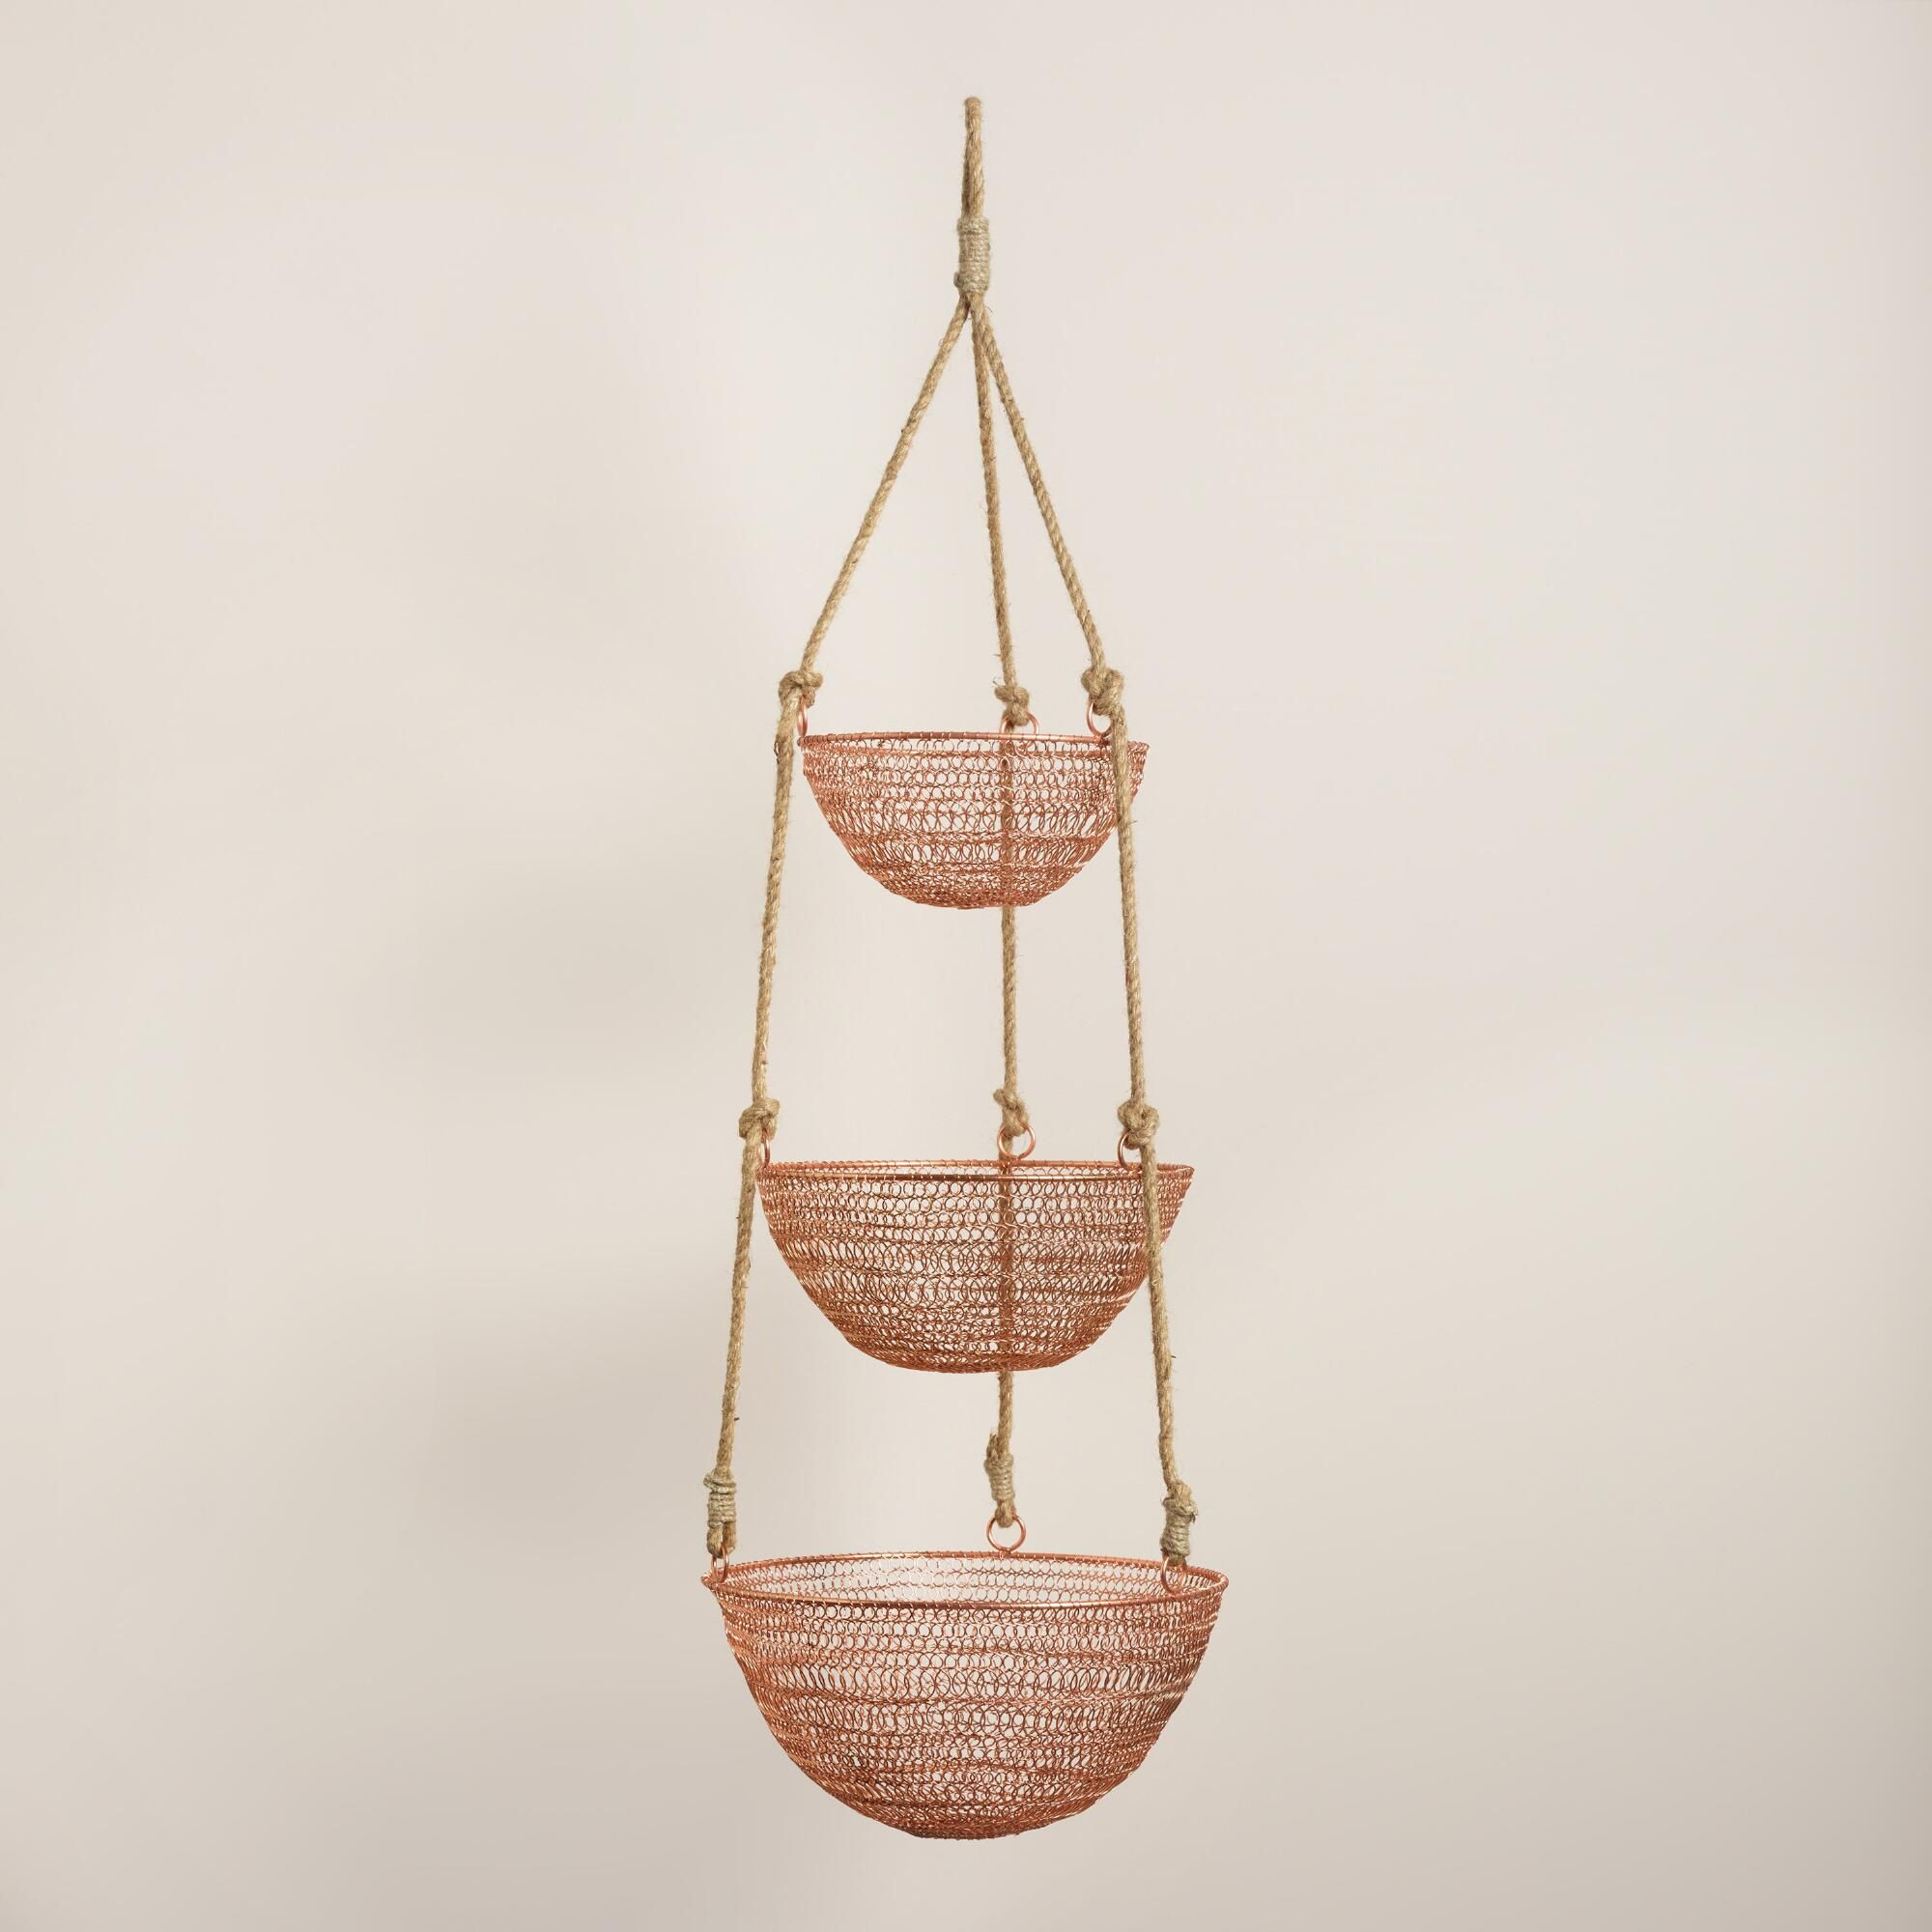 Featuring Copper Finished Baskets Bound By Jute Rope Our Three Tier Hanging Basket